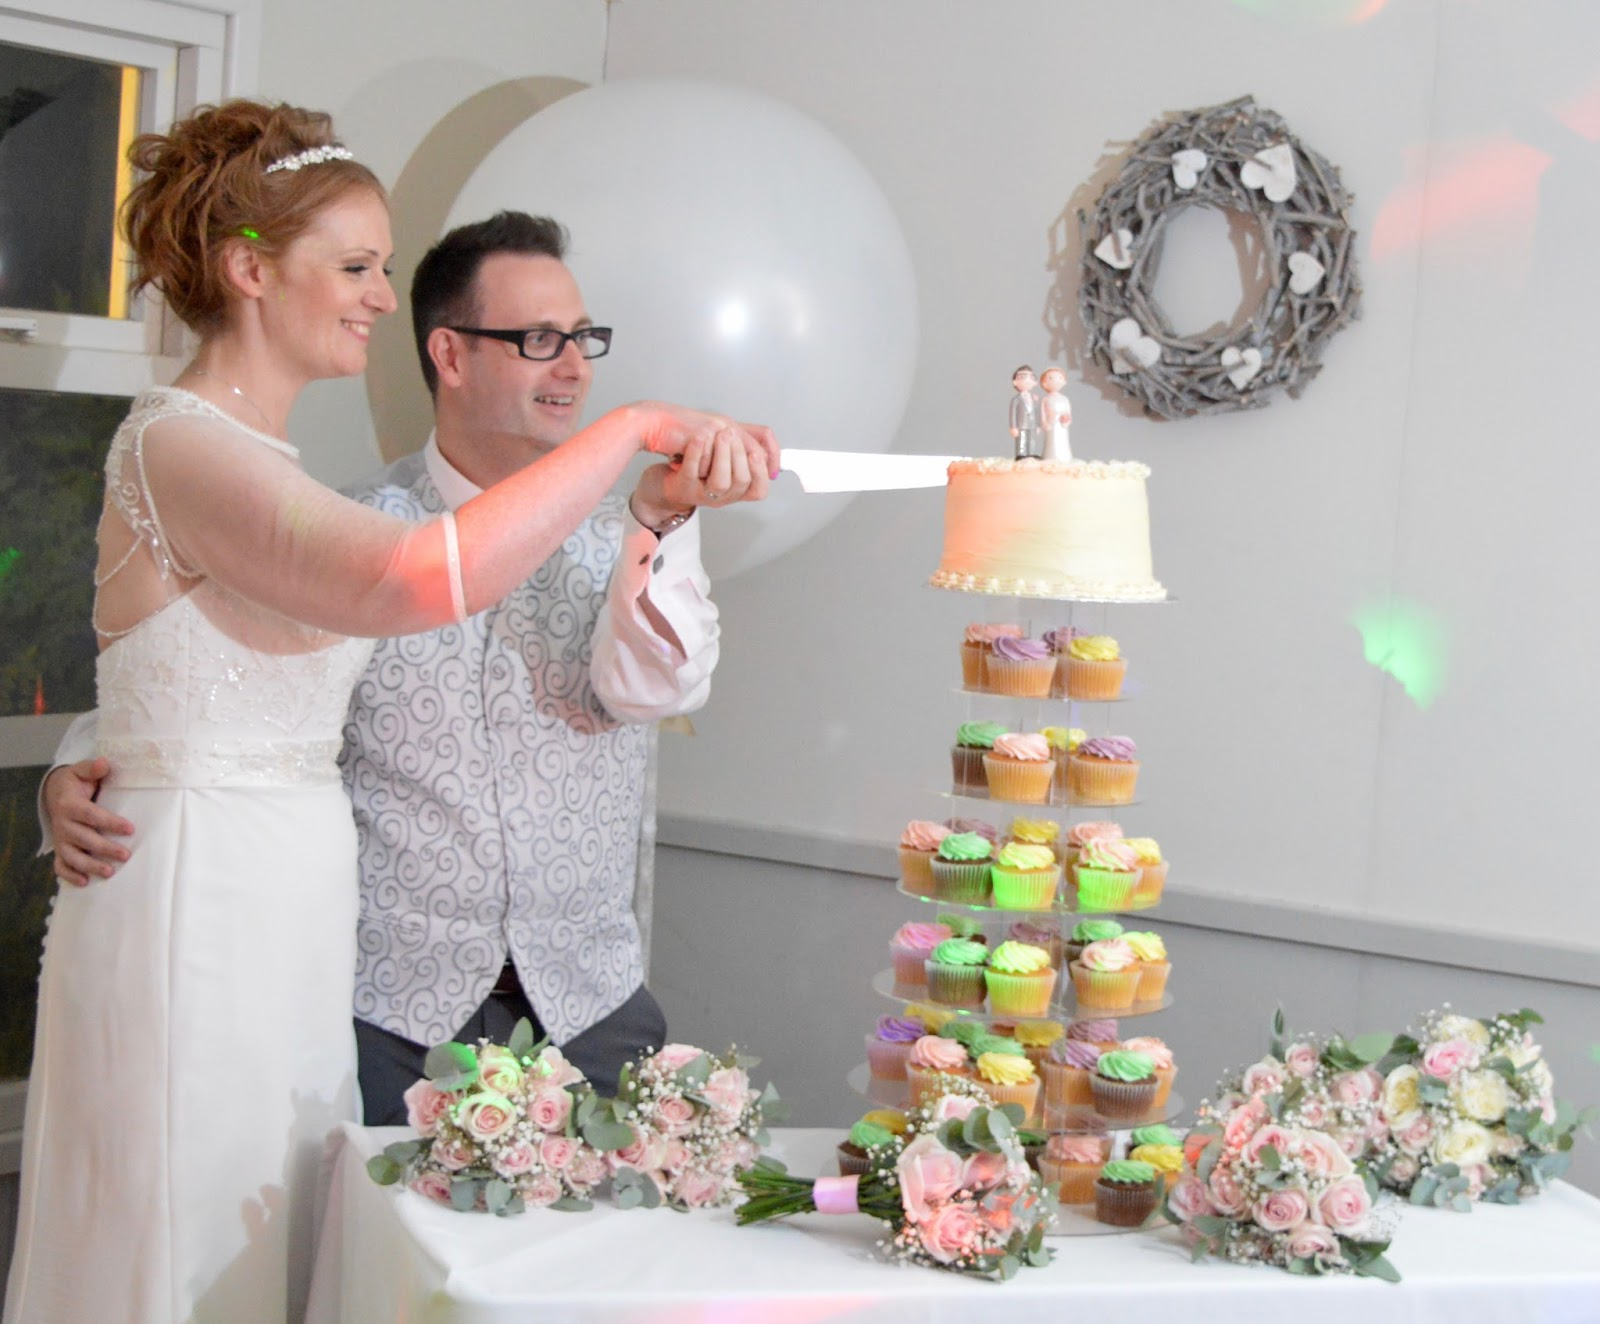 Weddings at The Parlour at Blagdon in Northumberland - cutting the cake